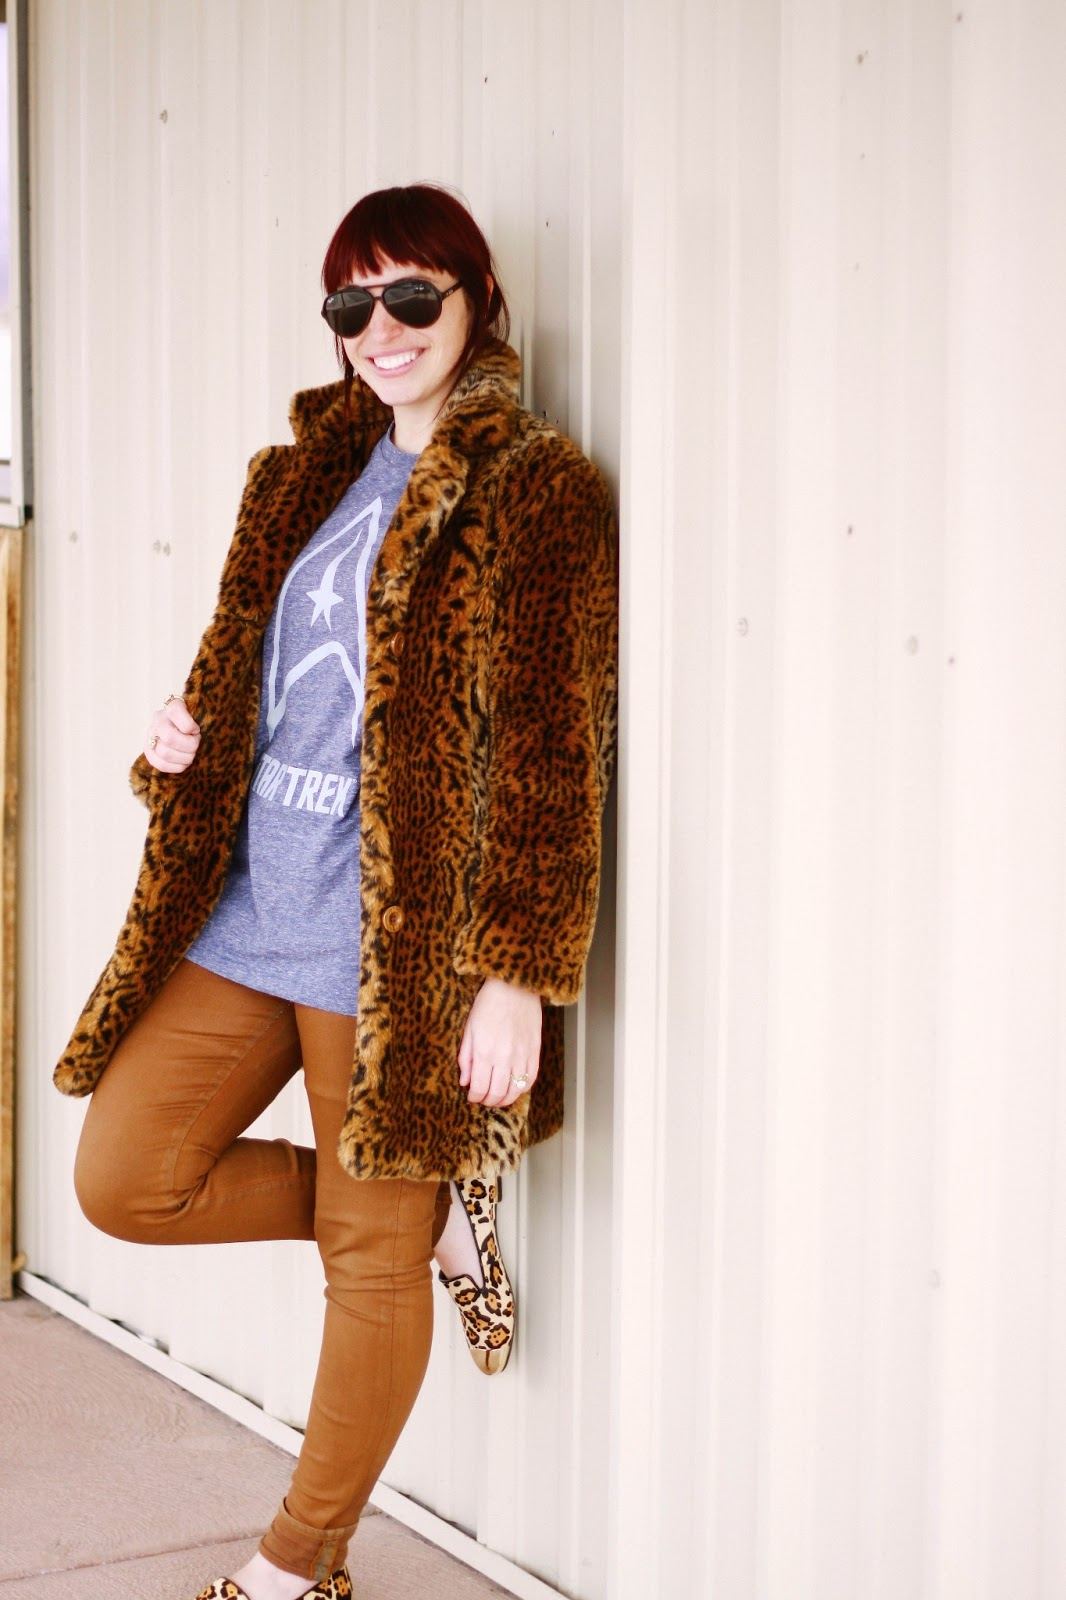 fashion blog, fashion blogger, style blog, style blogger, mens fashion, mens fashion blog, mens style, mens style blog, womens style blog, anthropologie ootd blog, anthropologie ootd, anthropologie, ootd, mens ootd, womens ootd, steve madden, cheetah, cheeatah loafers, oxford, nordstrom, faux fur coat, fur coat, waxed jeans, citizens of humanity waxed jeans, rayban, aviator ray ban, star trek, treky,